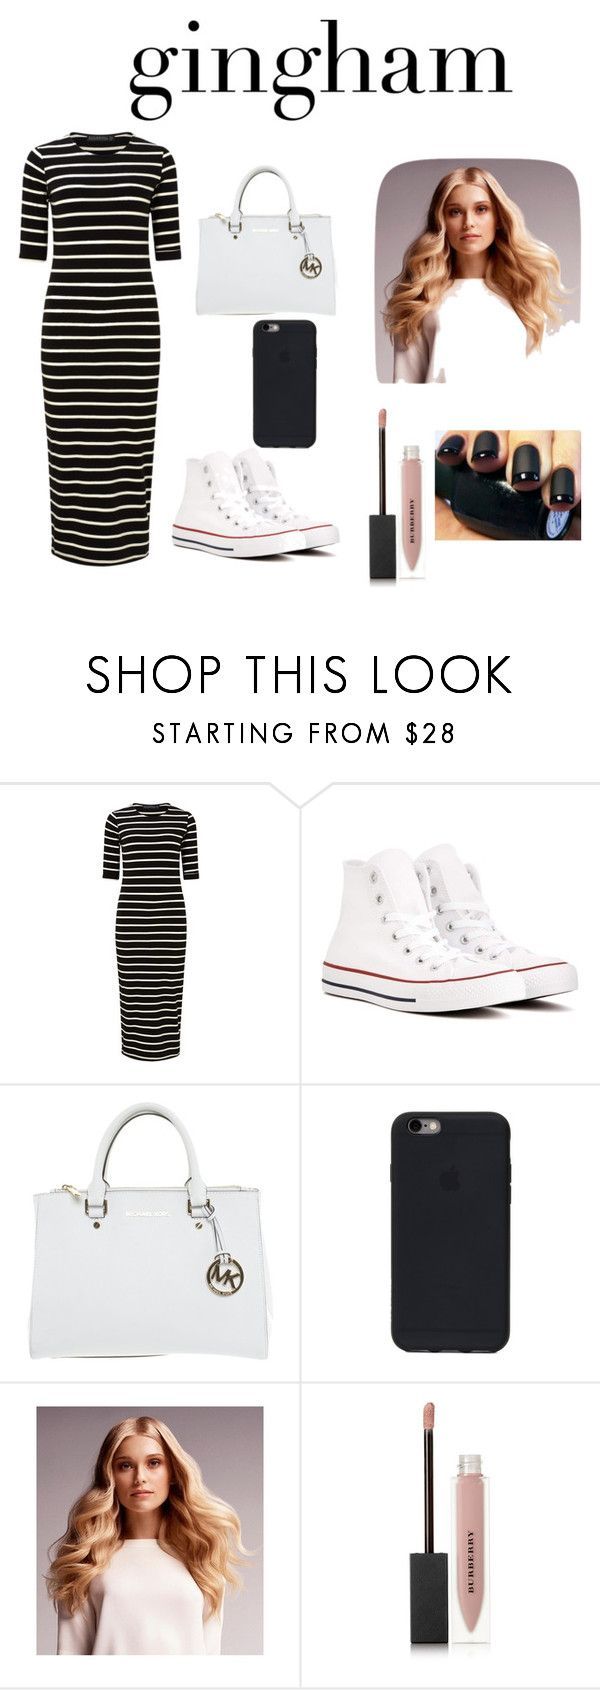 """monokrom 🎲"" by callmeje ❤ liked on Polyvore featuring Sugarhill Boutique, Converse, Michael Kors, BaByliss and Burberry"